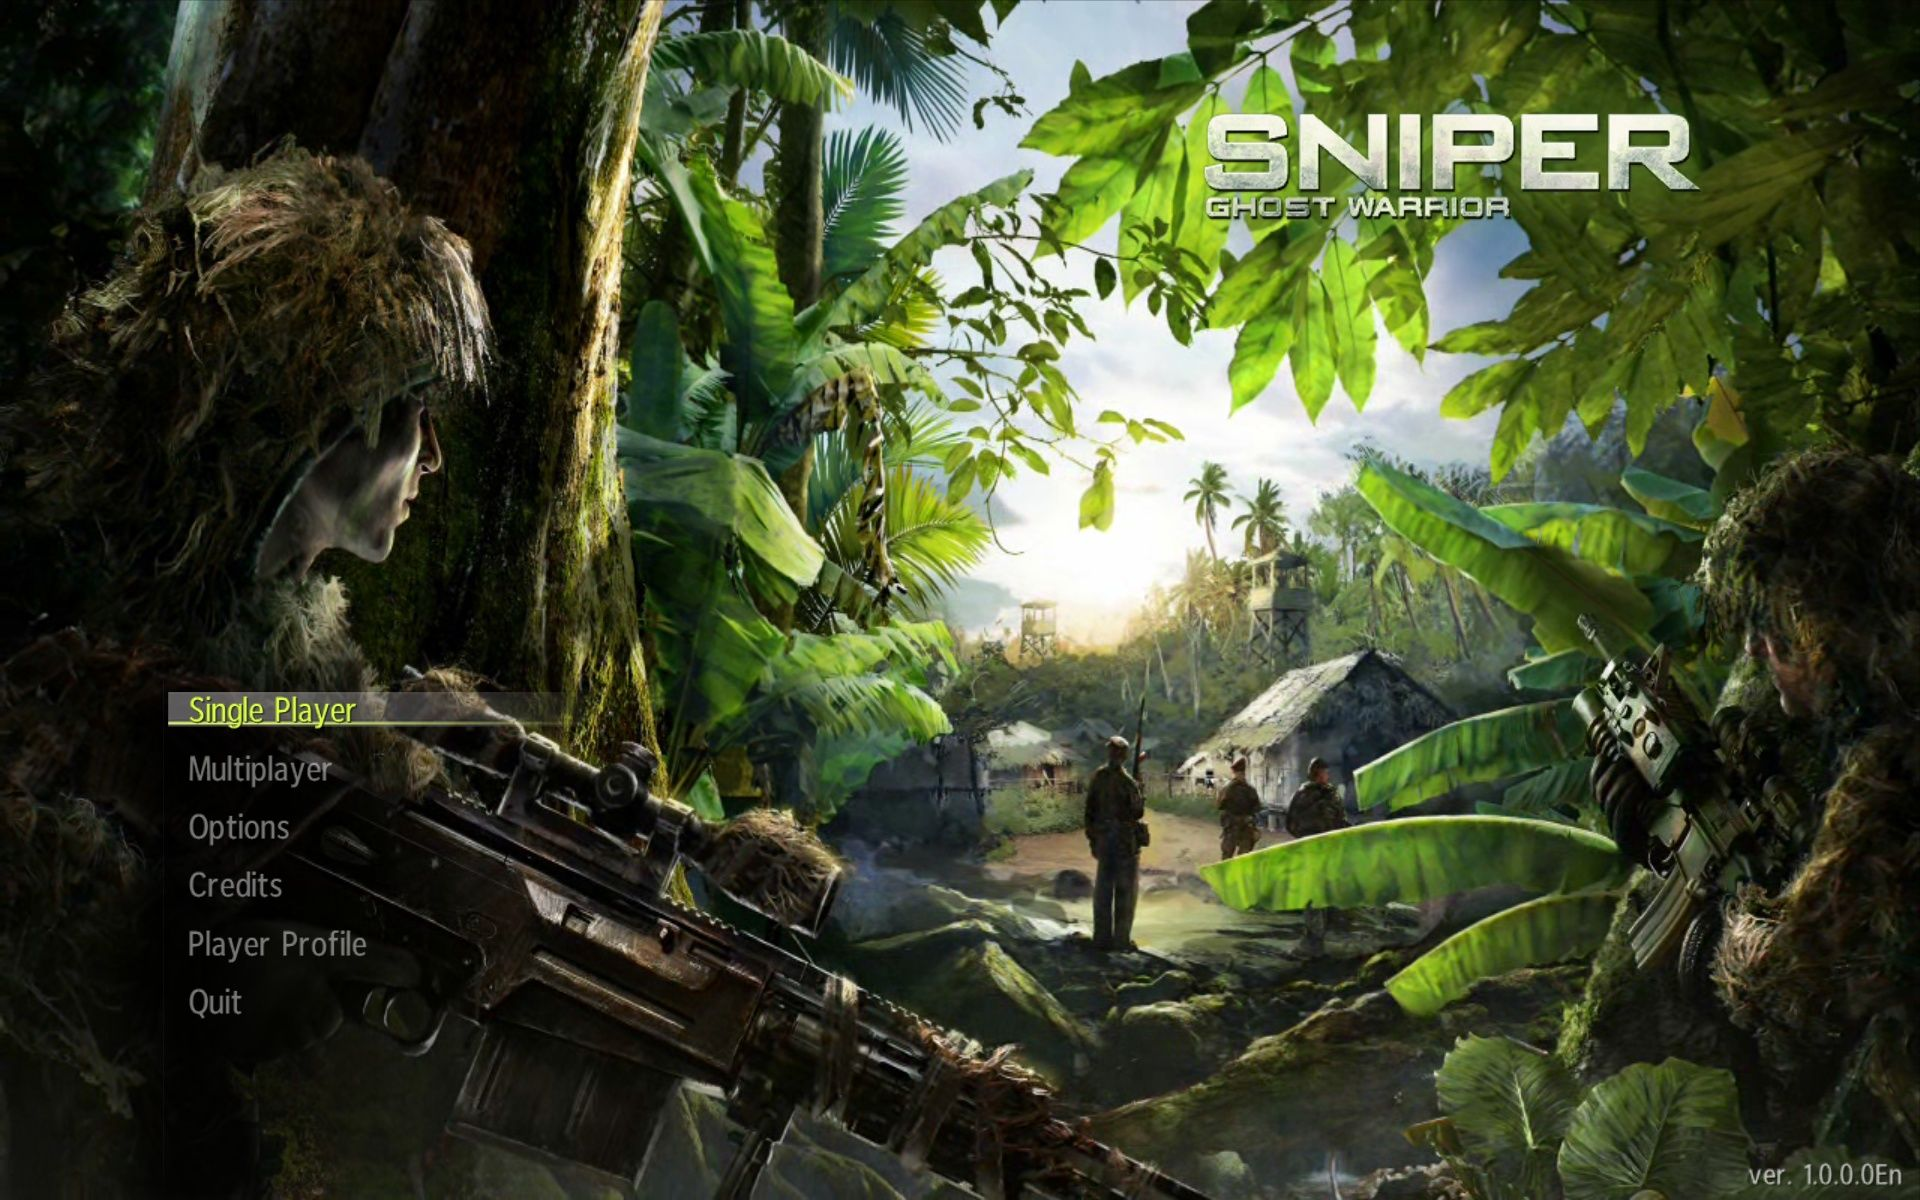 sniper: ghost warrior screenshots for windows - mobygames